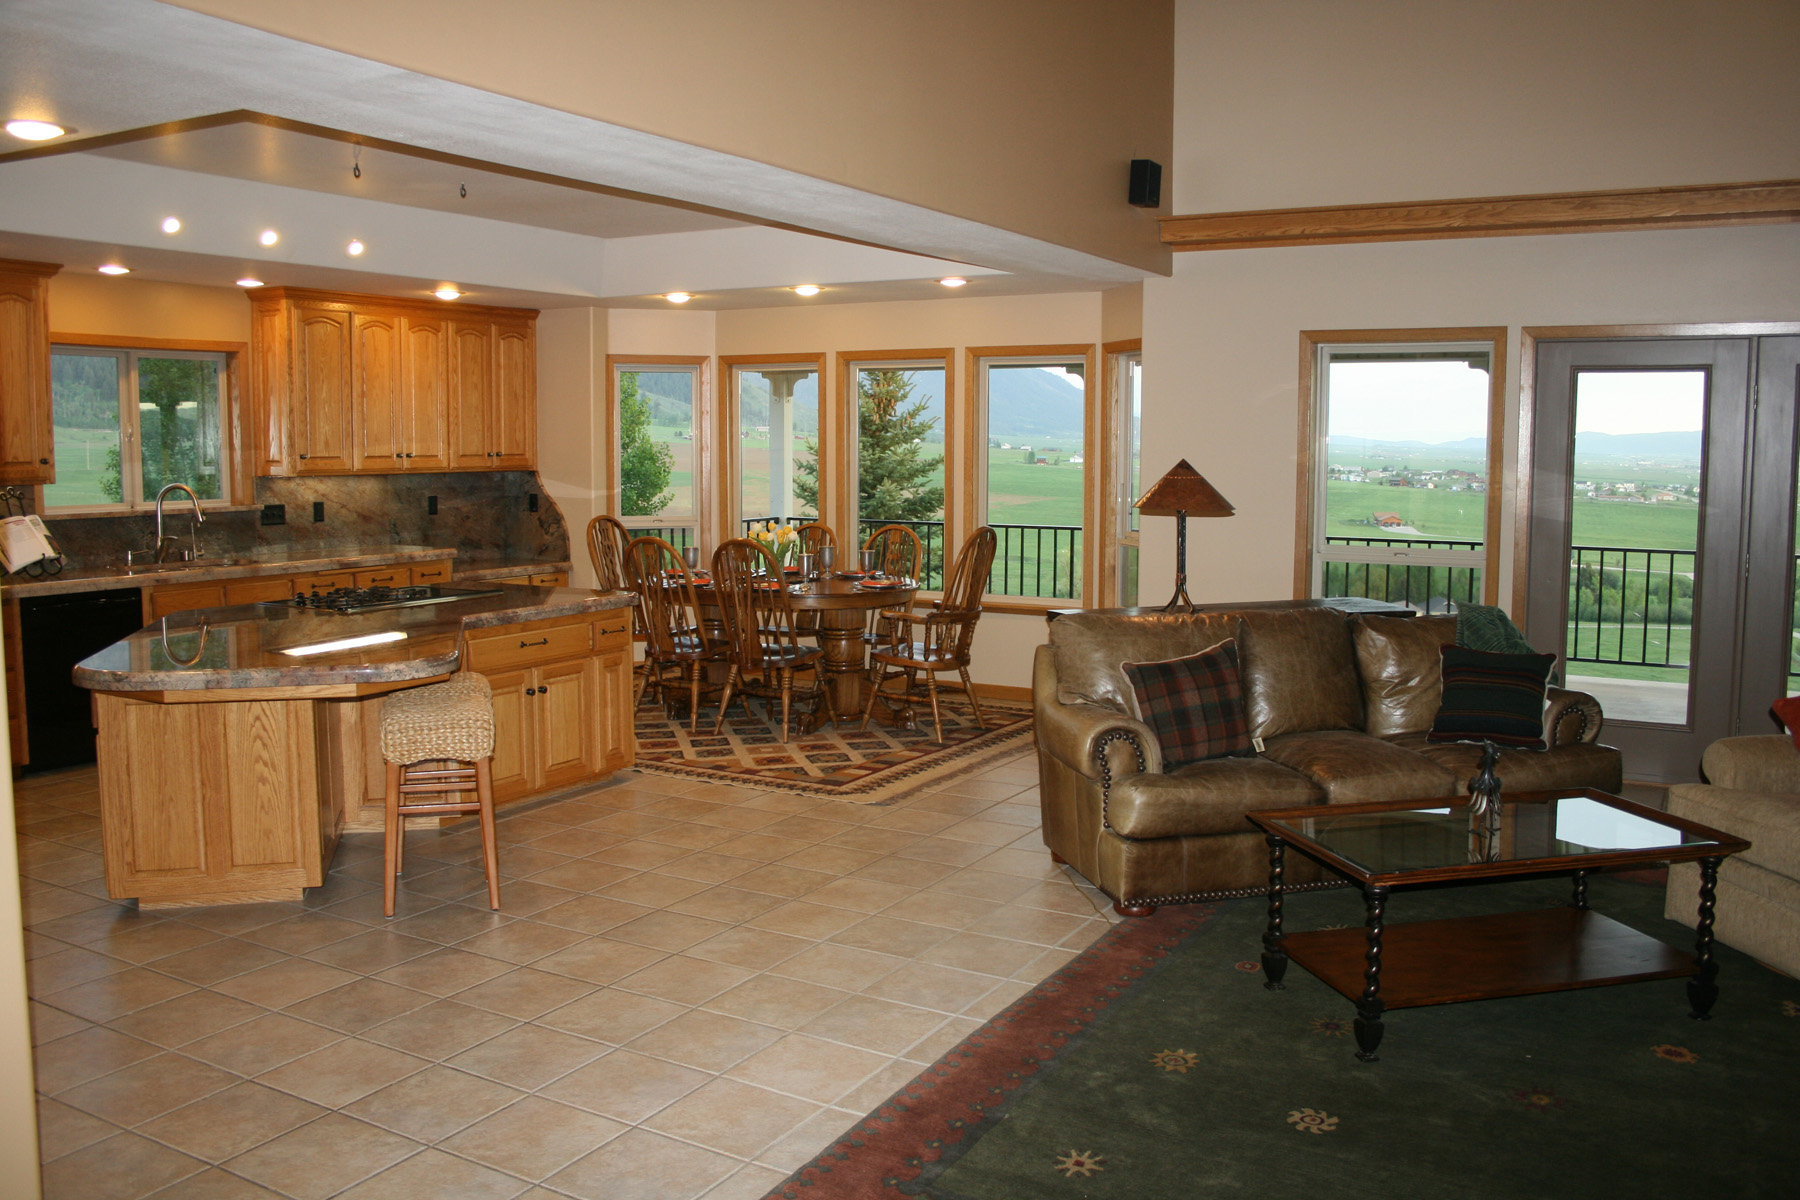 Casa Unifamiliar por un Venta en Star Valley Retreat 1546 Stewart Trail Etna, Wyoming 83118 Estados Unidos